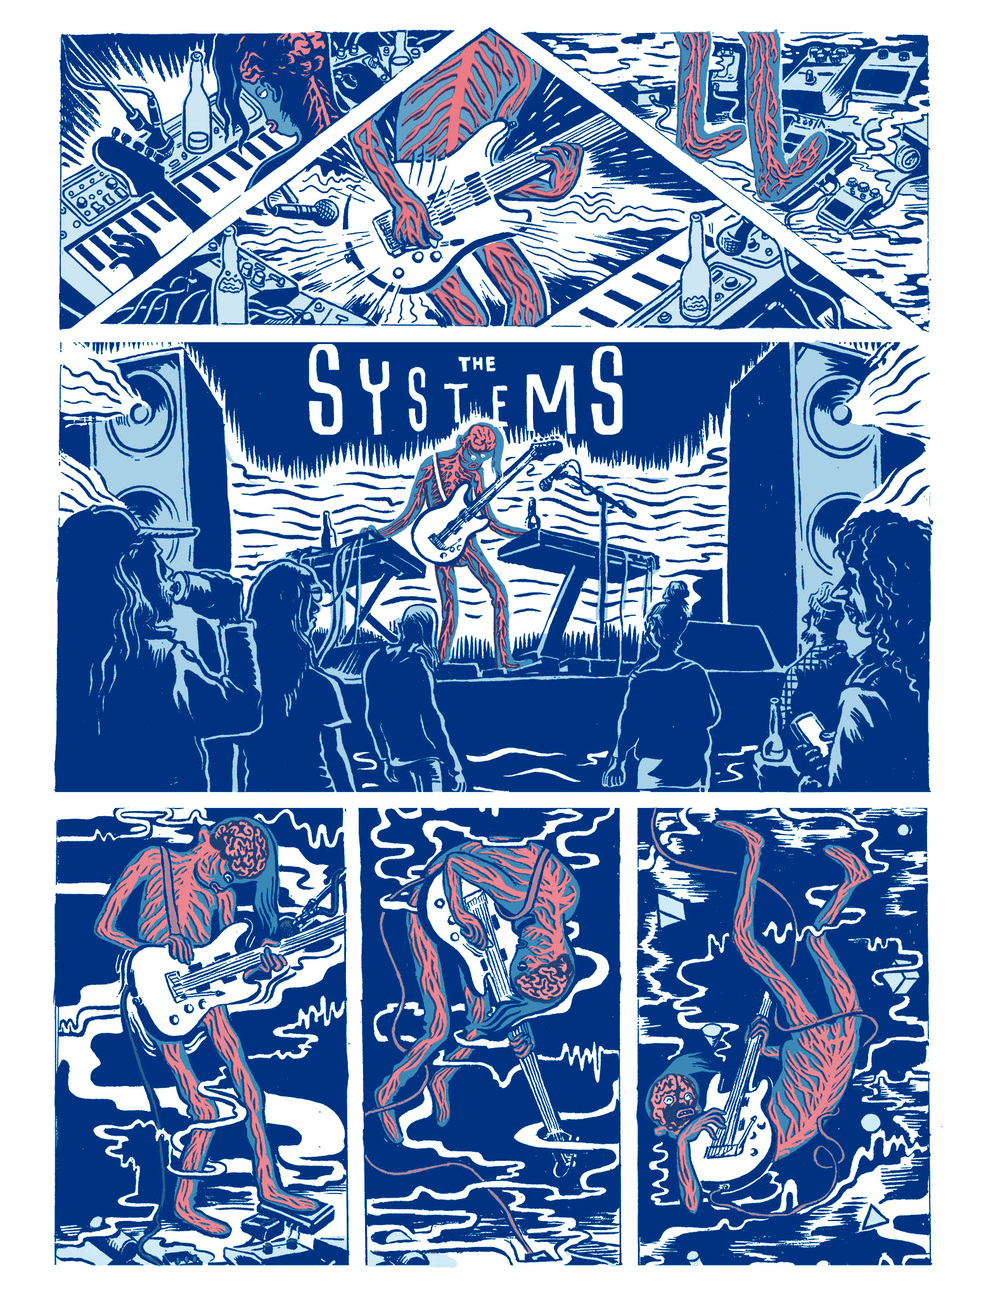 The Systems